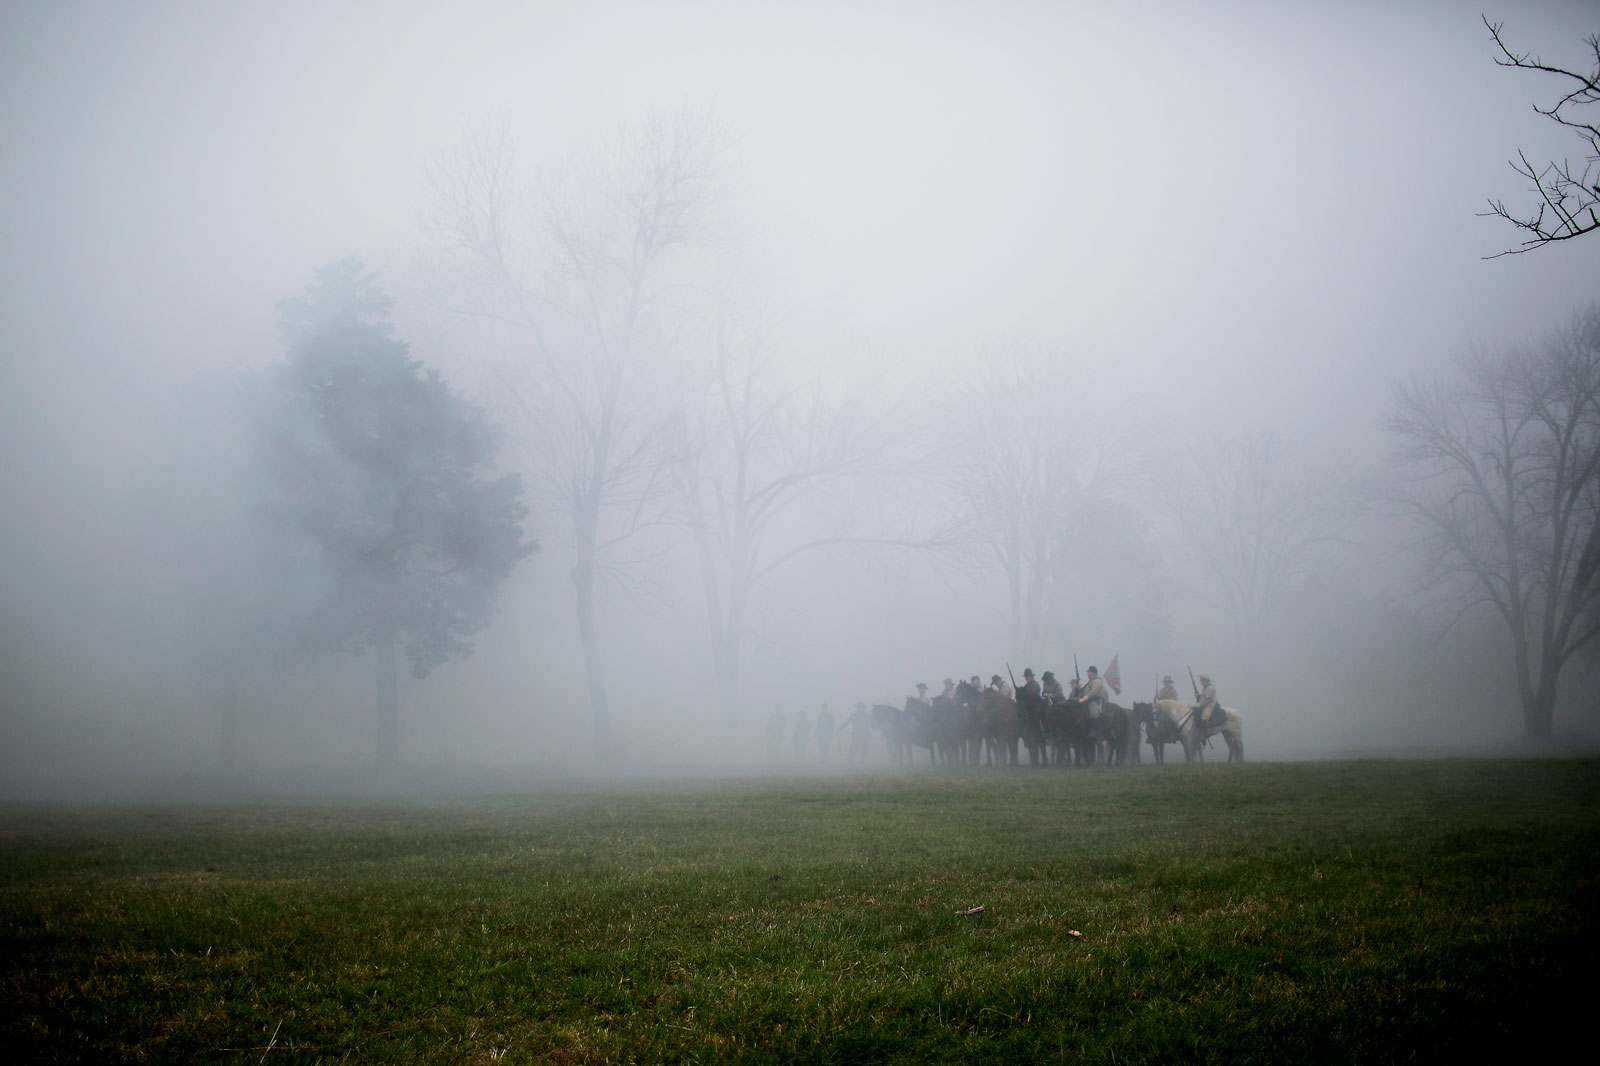 """To enforce it's might over a largely rural population, the Army marched across the South after Appomattox, occupying more than 750 towns and proclaiming emancipation by military order. This little-known occupation by tens of thousands of federal troops remade the South in ways that Washington proclamations alone could not ... Meanwhile, Southern soldiers continued to fight as insurgents, terrorizing blacks across the region. One congressman estimated that 50,000 African-Americans were murdered by white Southerners in the first quarter-century after emancipation."" — The Dangerous Myth of Appomattox: The New York Times"